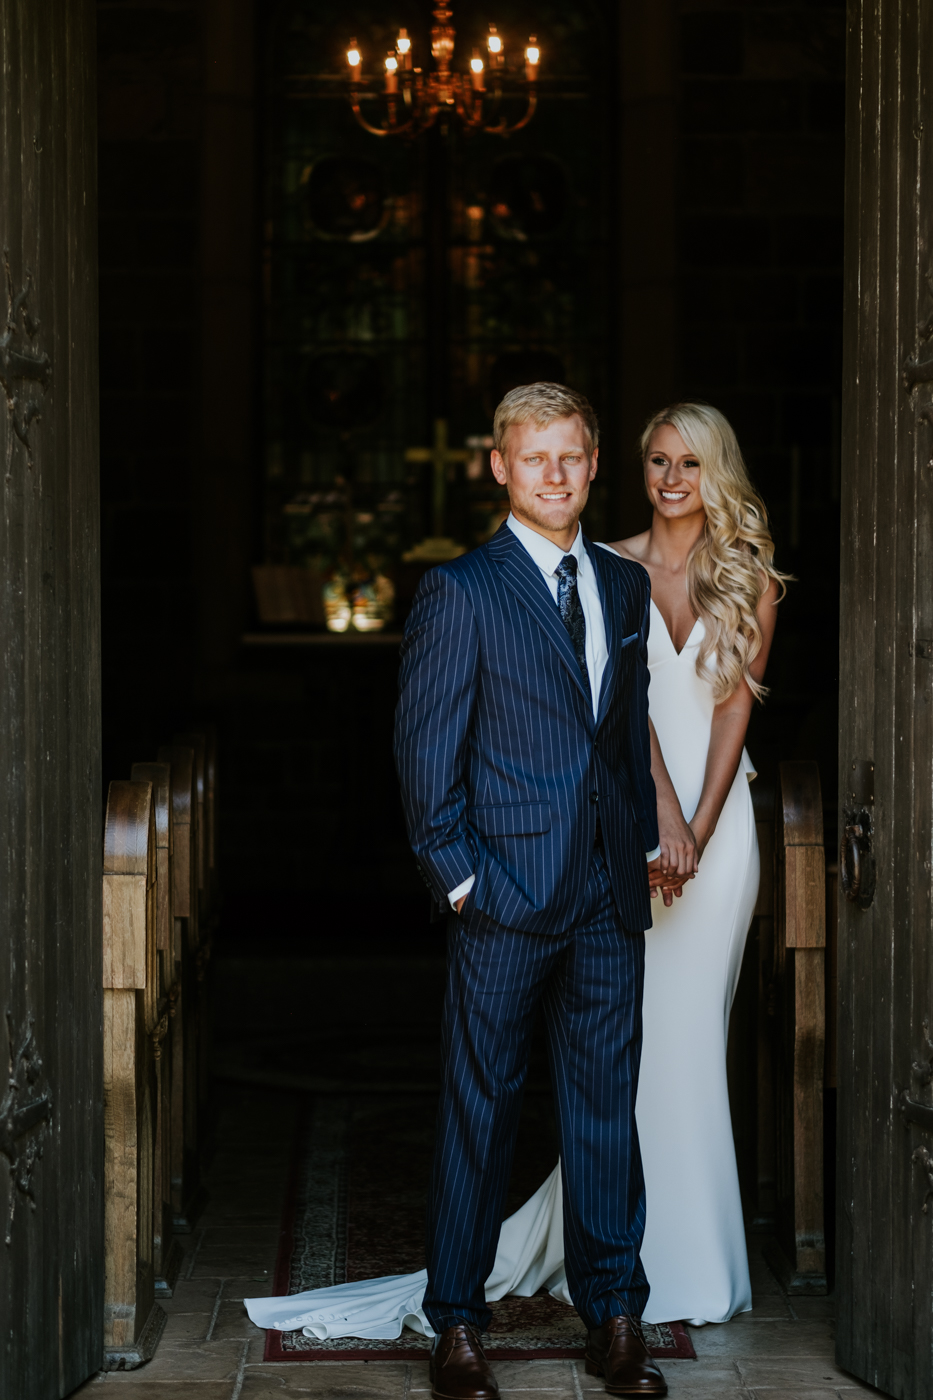 Sierra+Jacob.Wedding.Blog©mileswittboyer.com2018-51.jpg